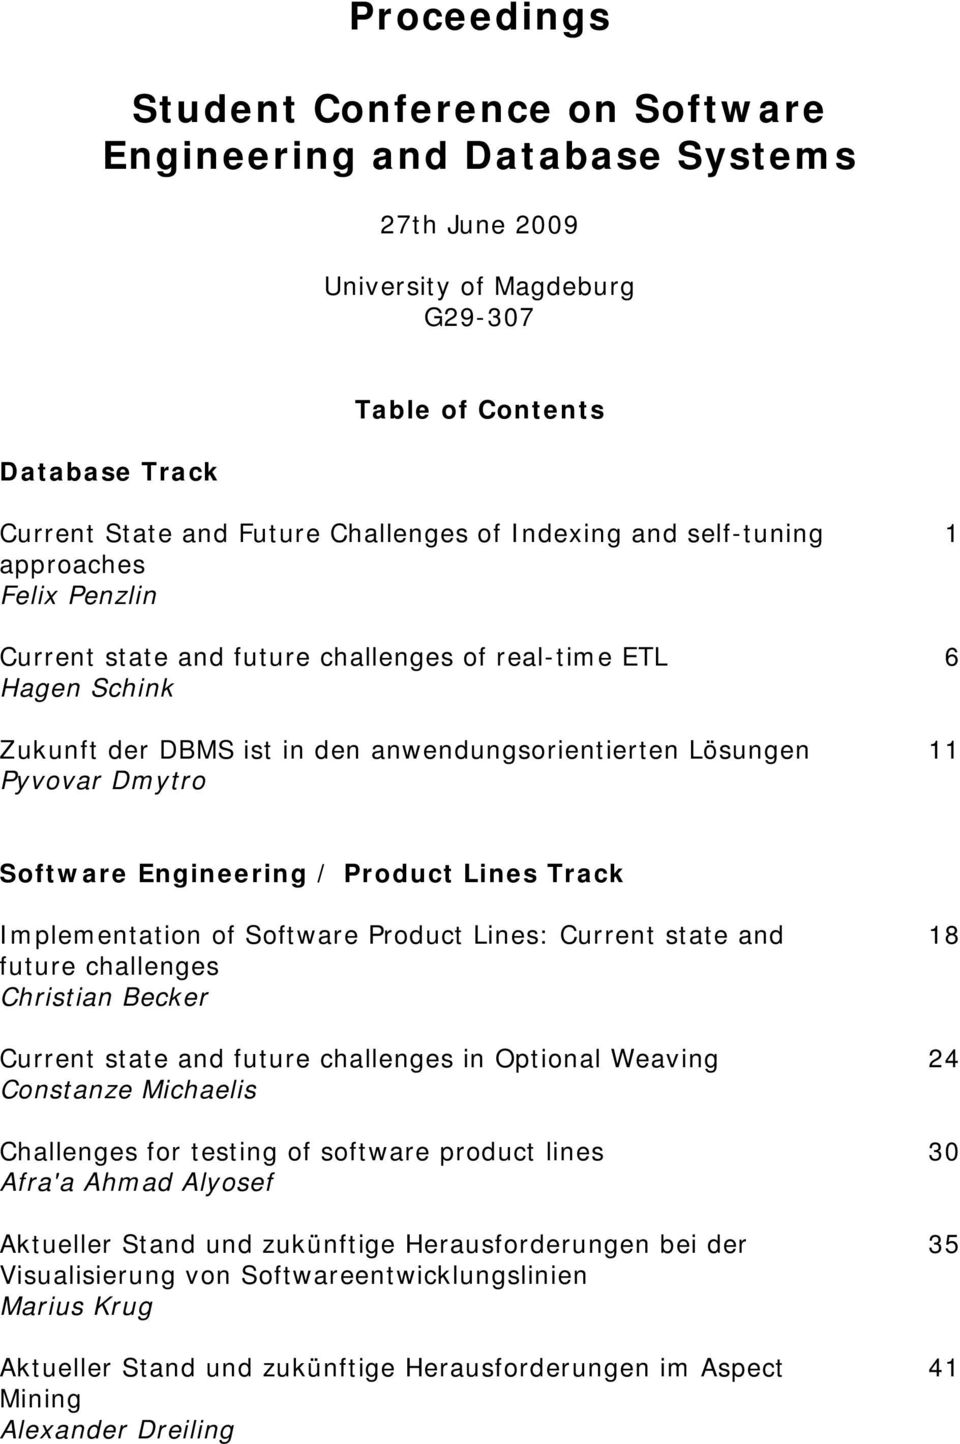 Software Engineering / Product Lines Track Implementation of Software Product Lines: Current state and future challenges Christian Becker Current state and future challenges in Optional Weaving